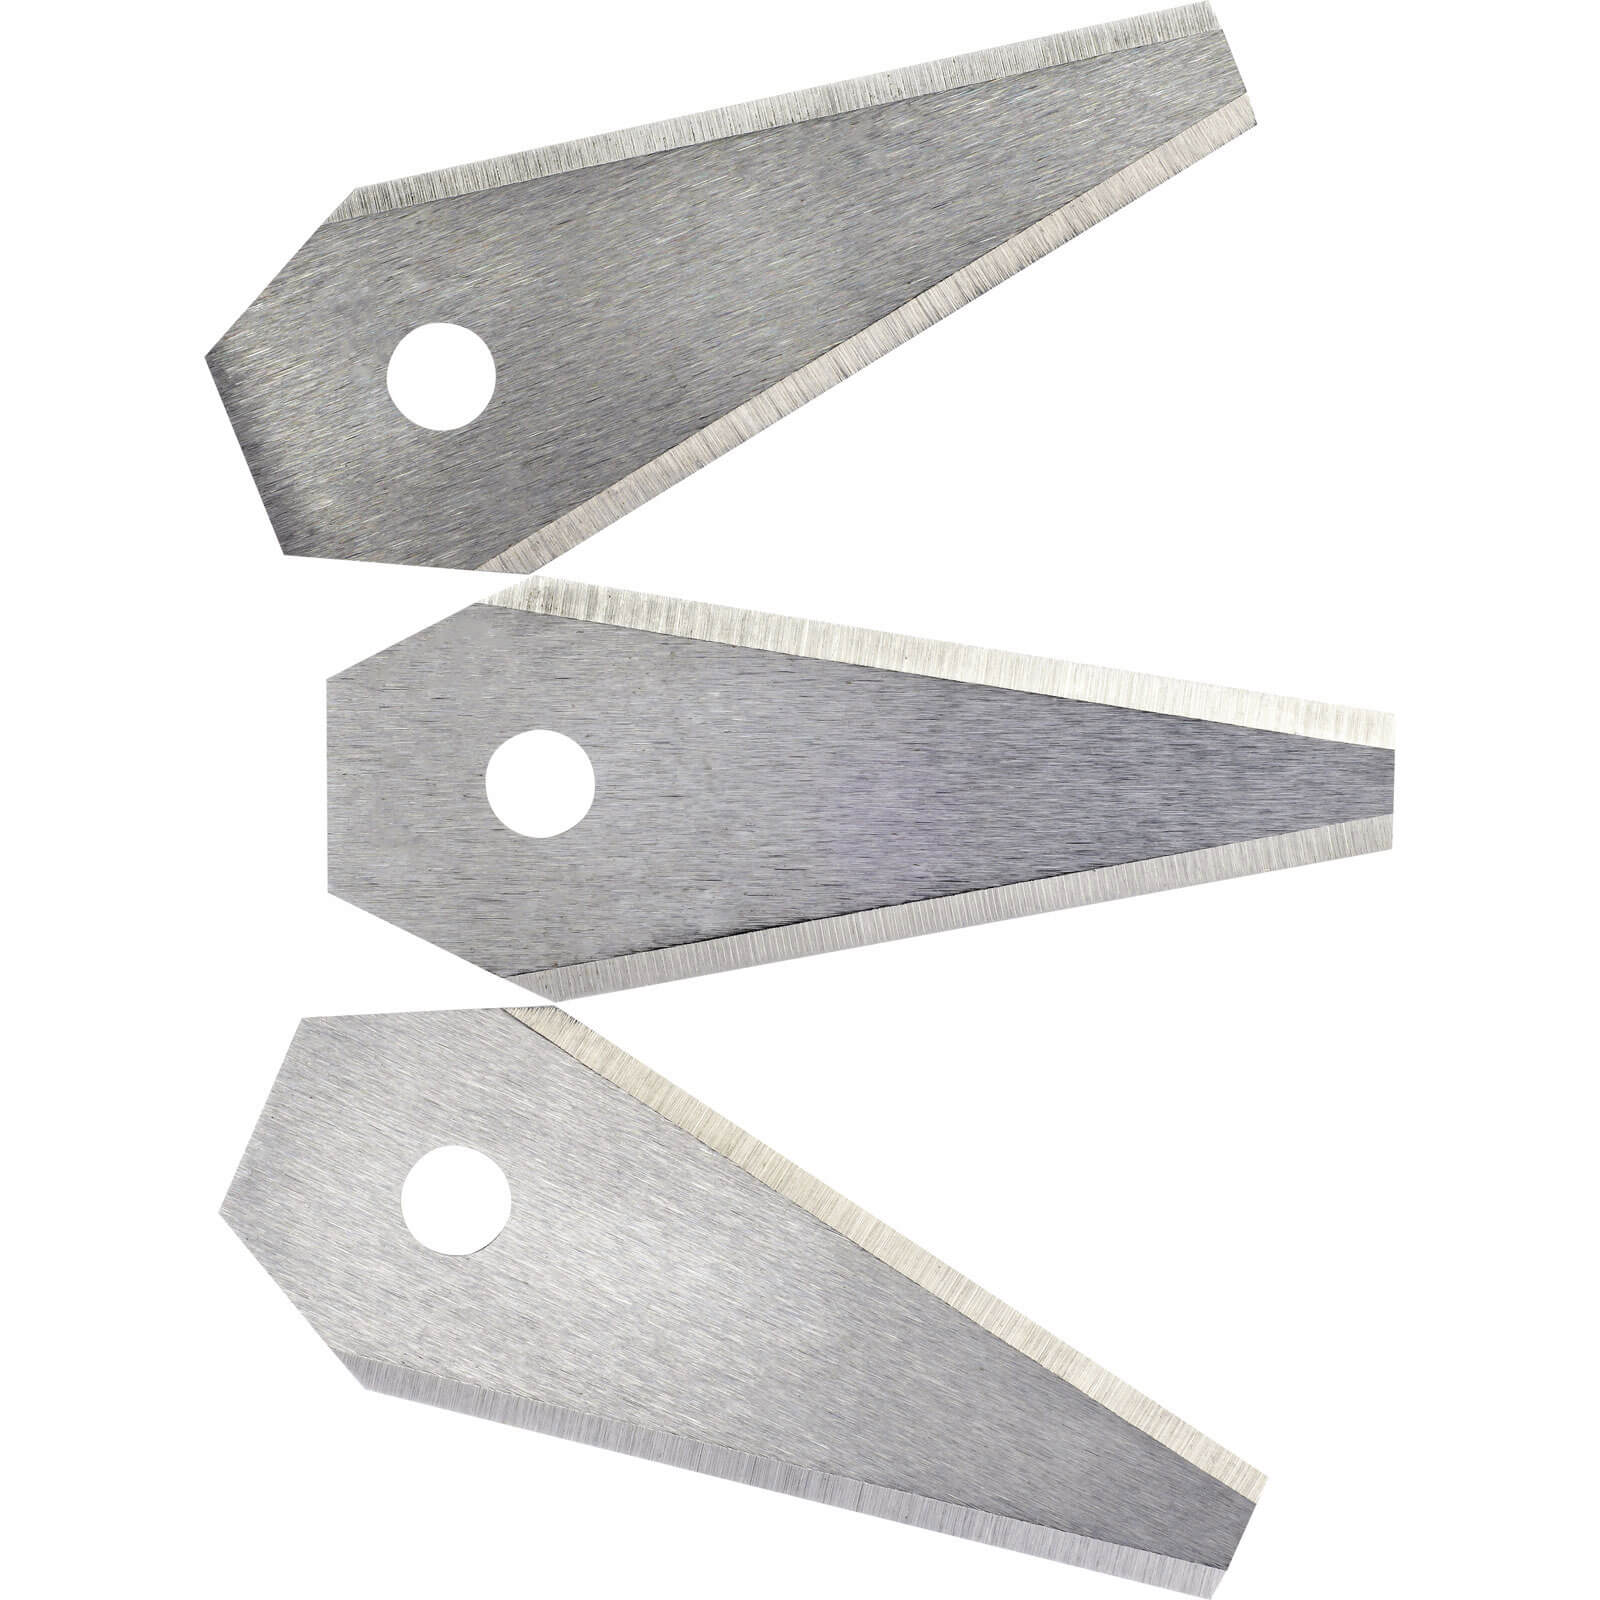 Bosch Pack of 3 Replacement Blades for Indego Robotic Lawn Mowers